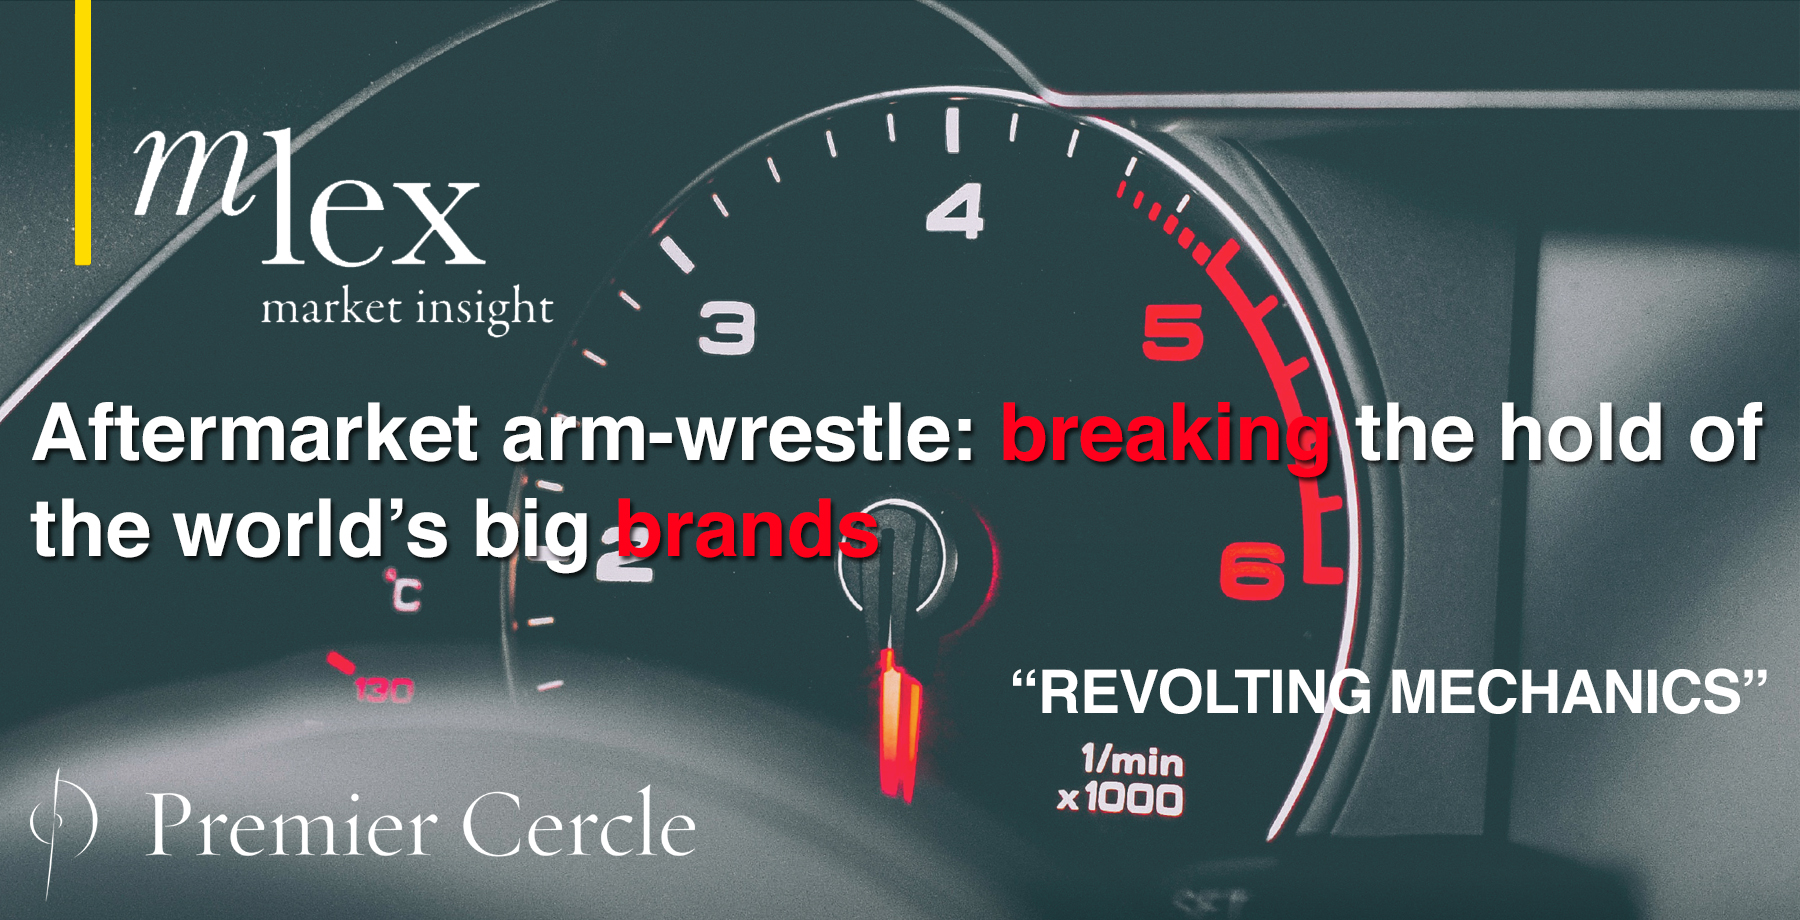 Aftermarket arm-wrestle: breaking the hold of the world's big brands